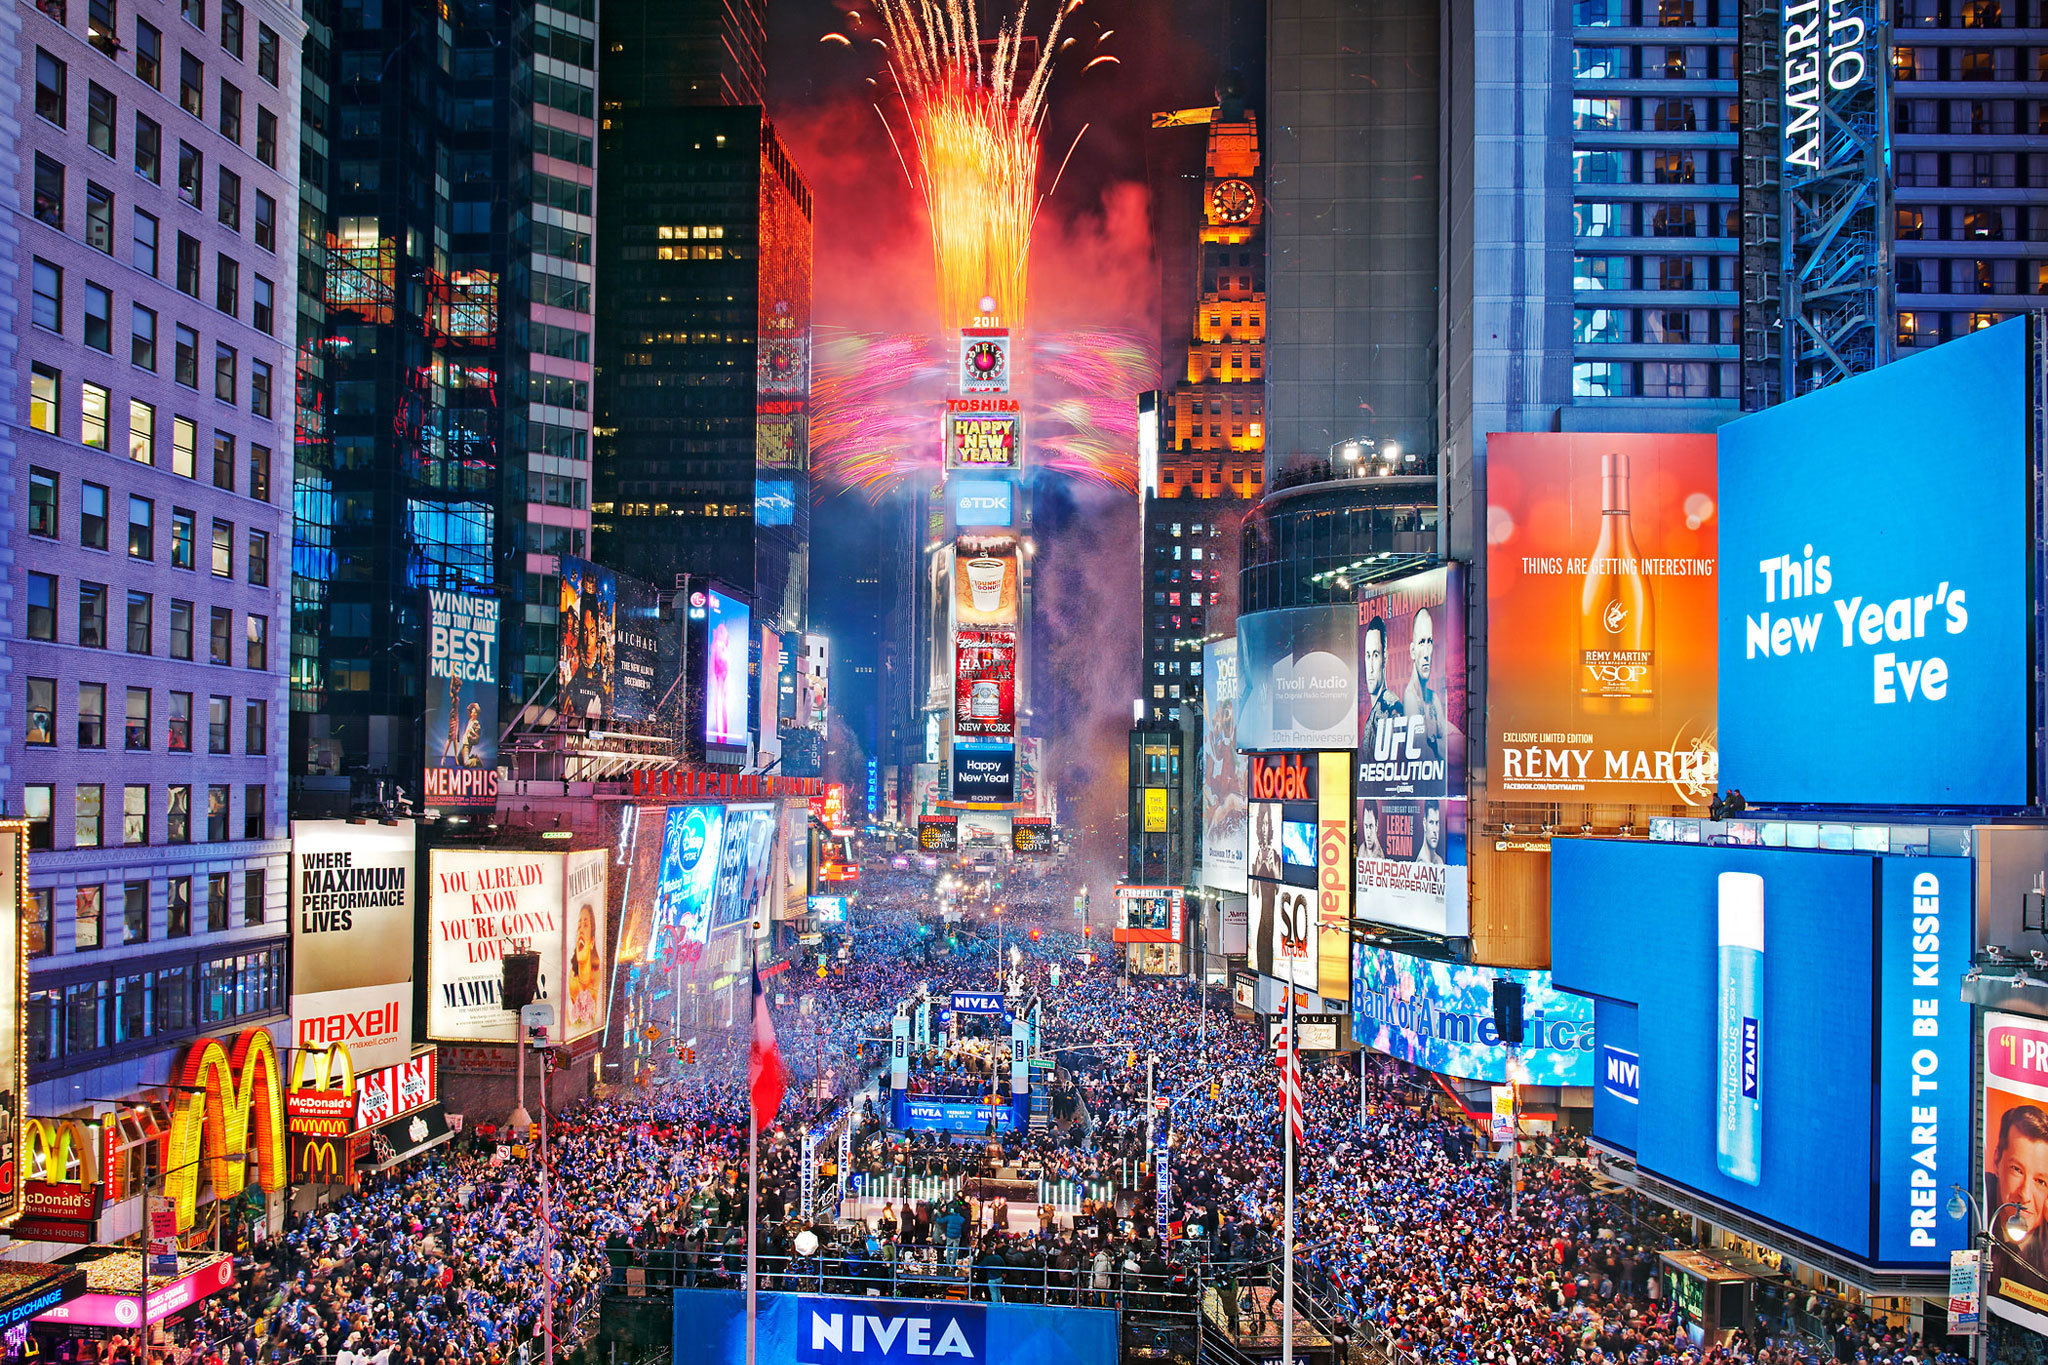 10 insider tips for doing Times Square on New Year's Eve